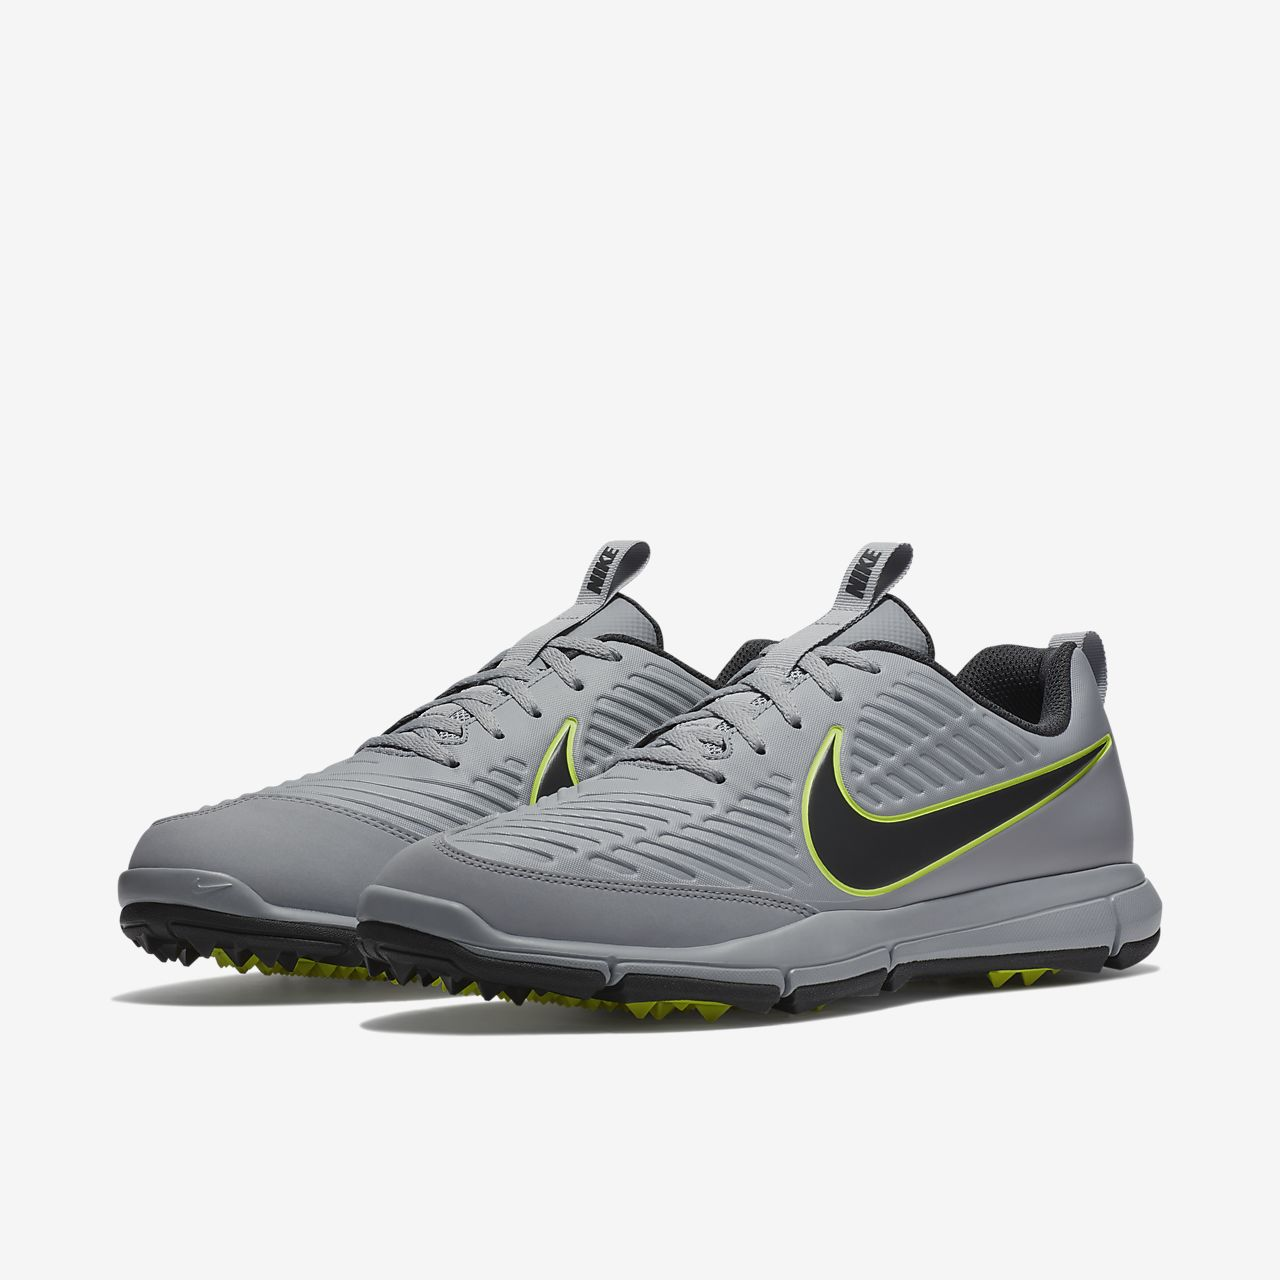 nike explorer 2 mens golf shoe nikecom